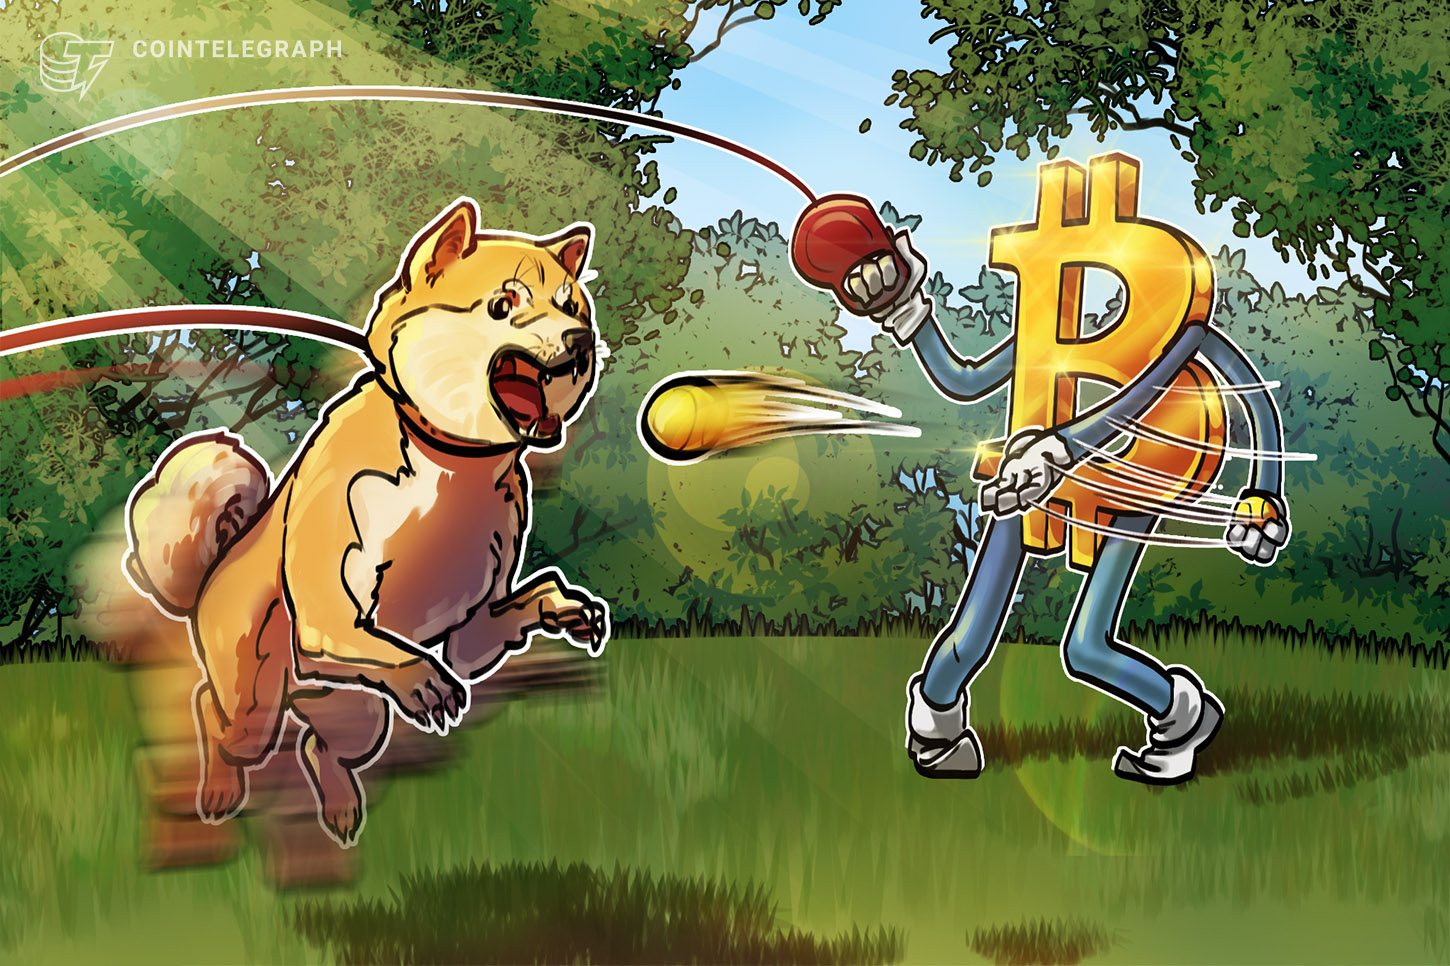 Dogecoin loses 70% against Bitcoin during 6 months of celebrity DOGE endorsements